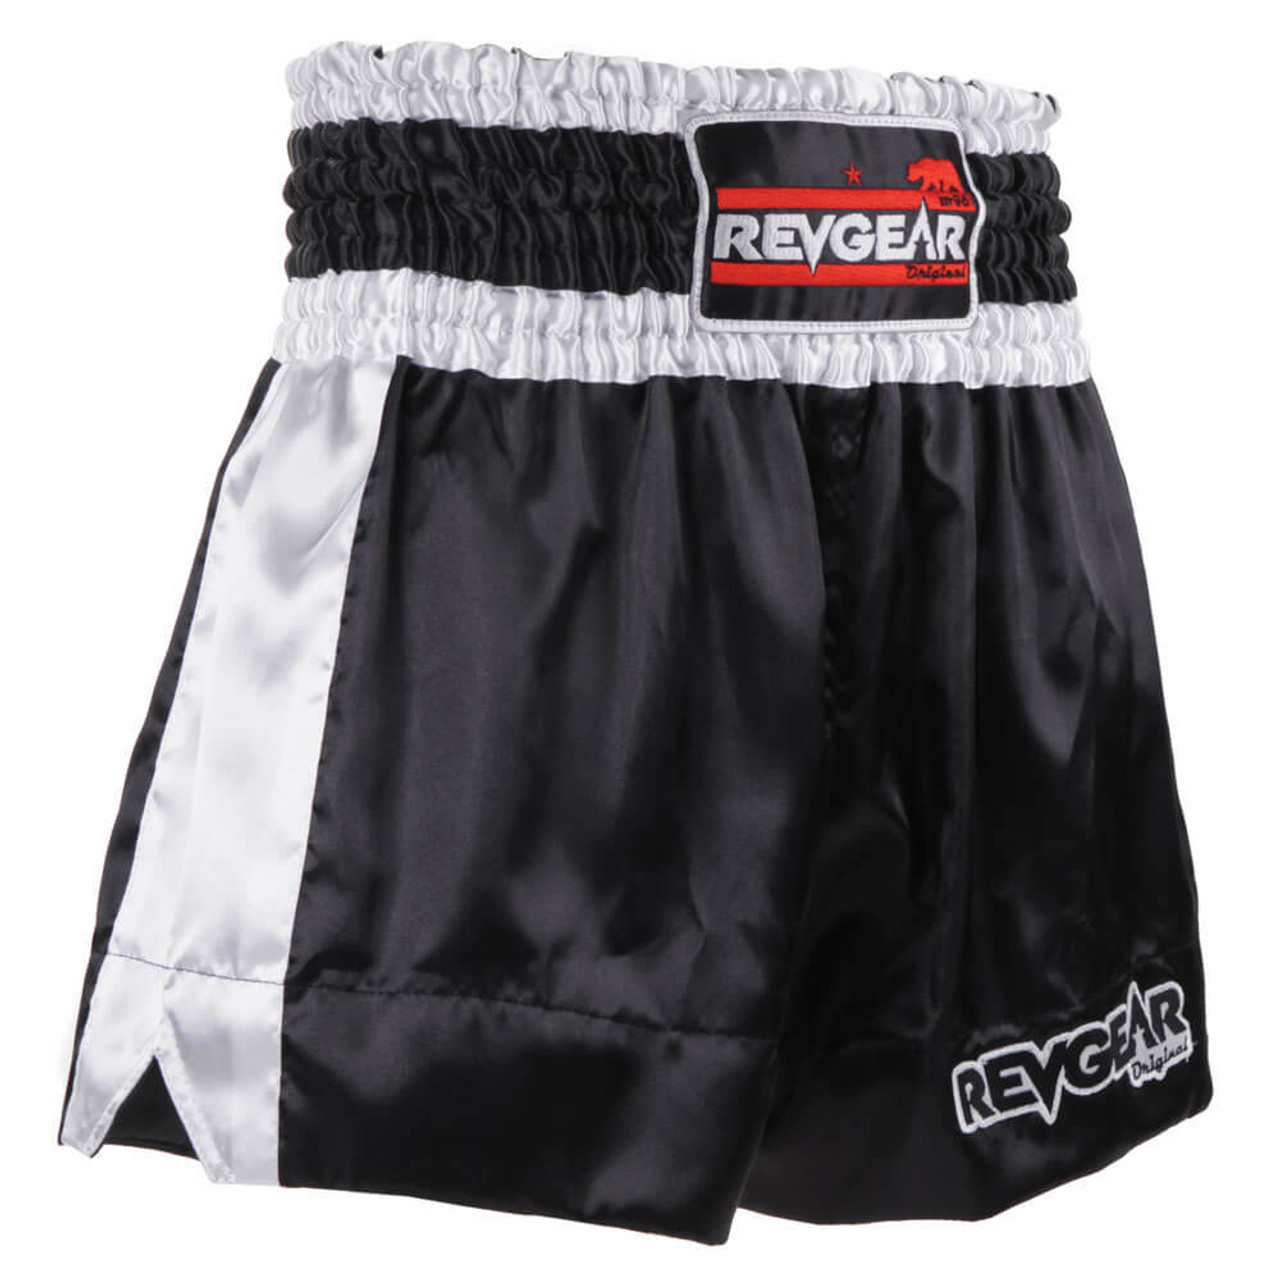 Thai Original Muay Thai Short - Black